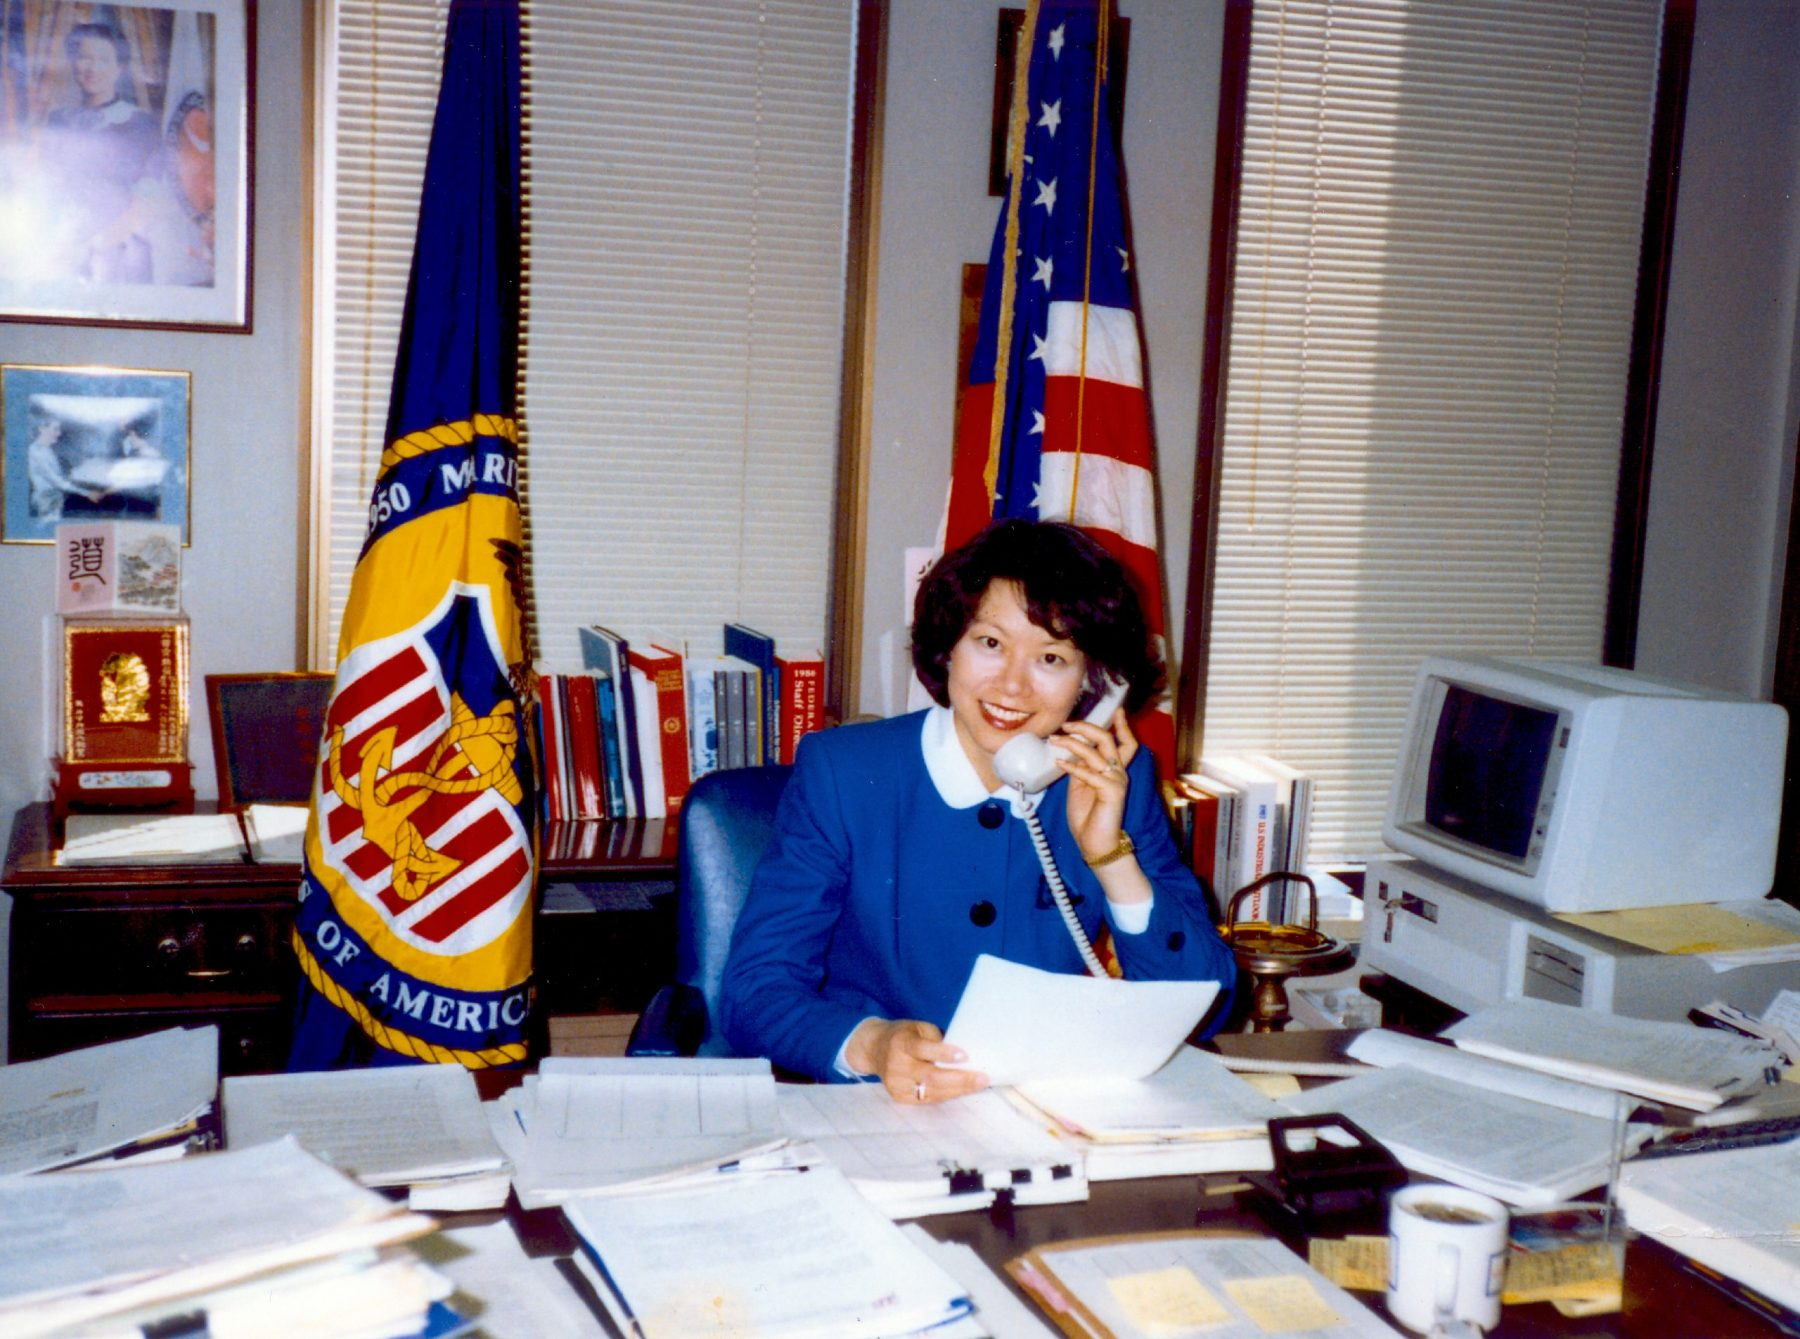 Deputy Maritime Administrator Elaine Chao in her office at the U. S. Department of Transportation, Washington, D. C.